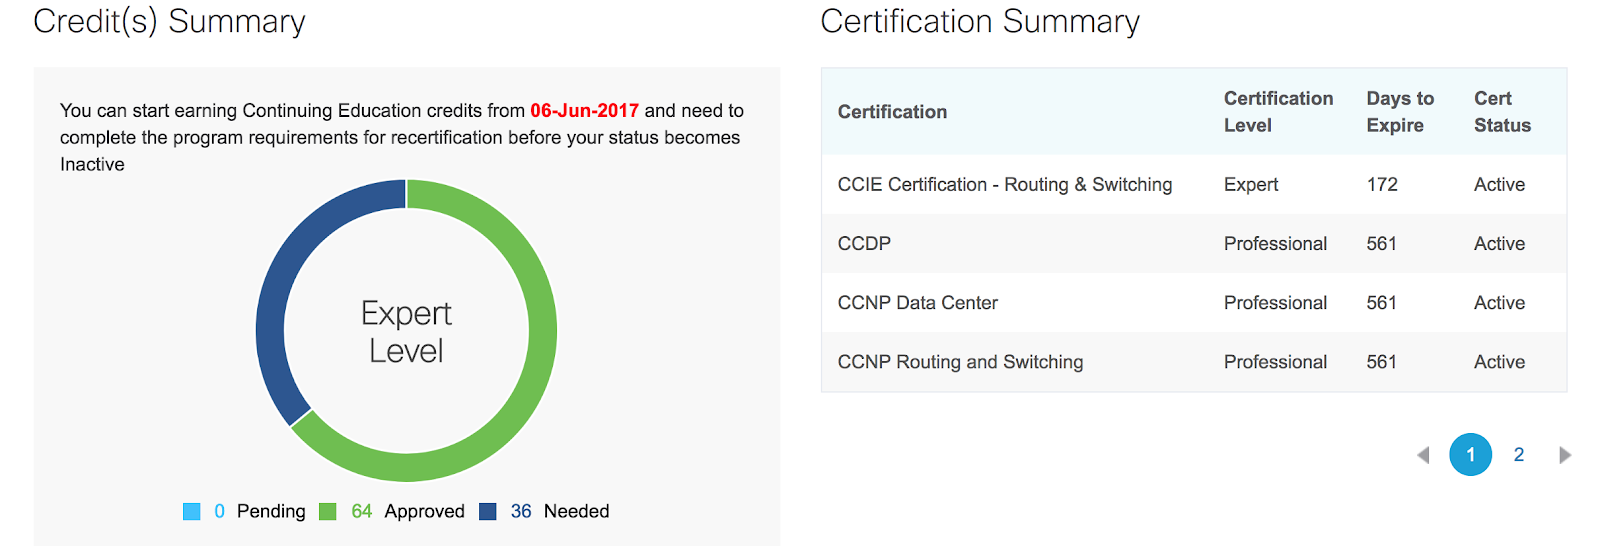 Kyle's Blog: Recertifying CCIE with continuing education